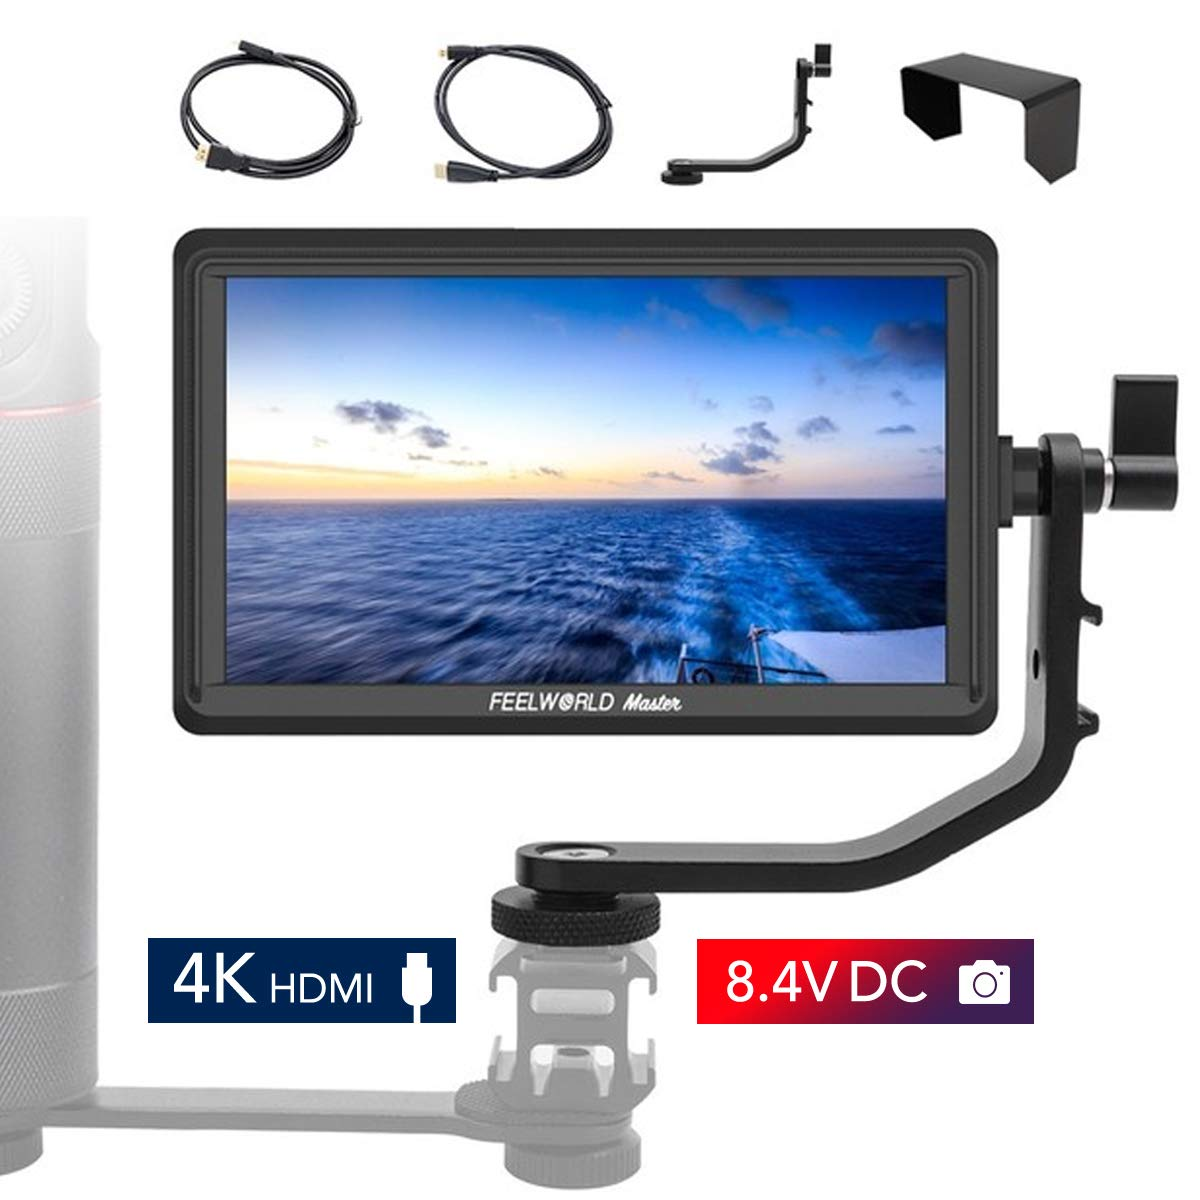 Feelworld Master MA6F 5.5 Inch DSLR Monitor 4K HDMI 8.4V DC in/Out, Full HD 1920x720p LCD Camera Field Monitor Tilt Arm Included by FEELWORLD